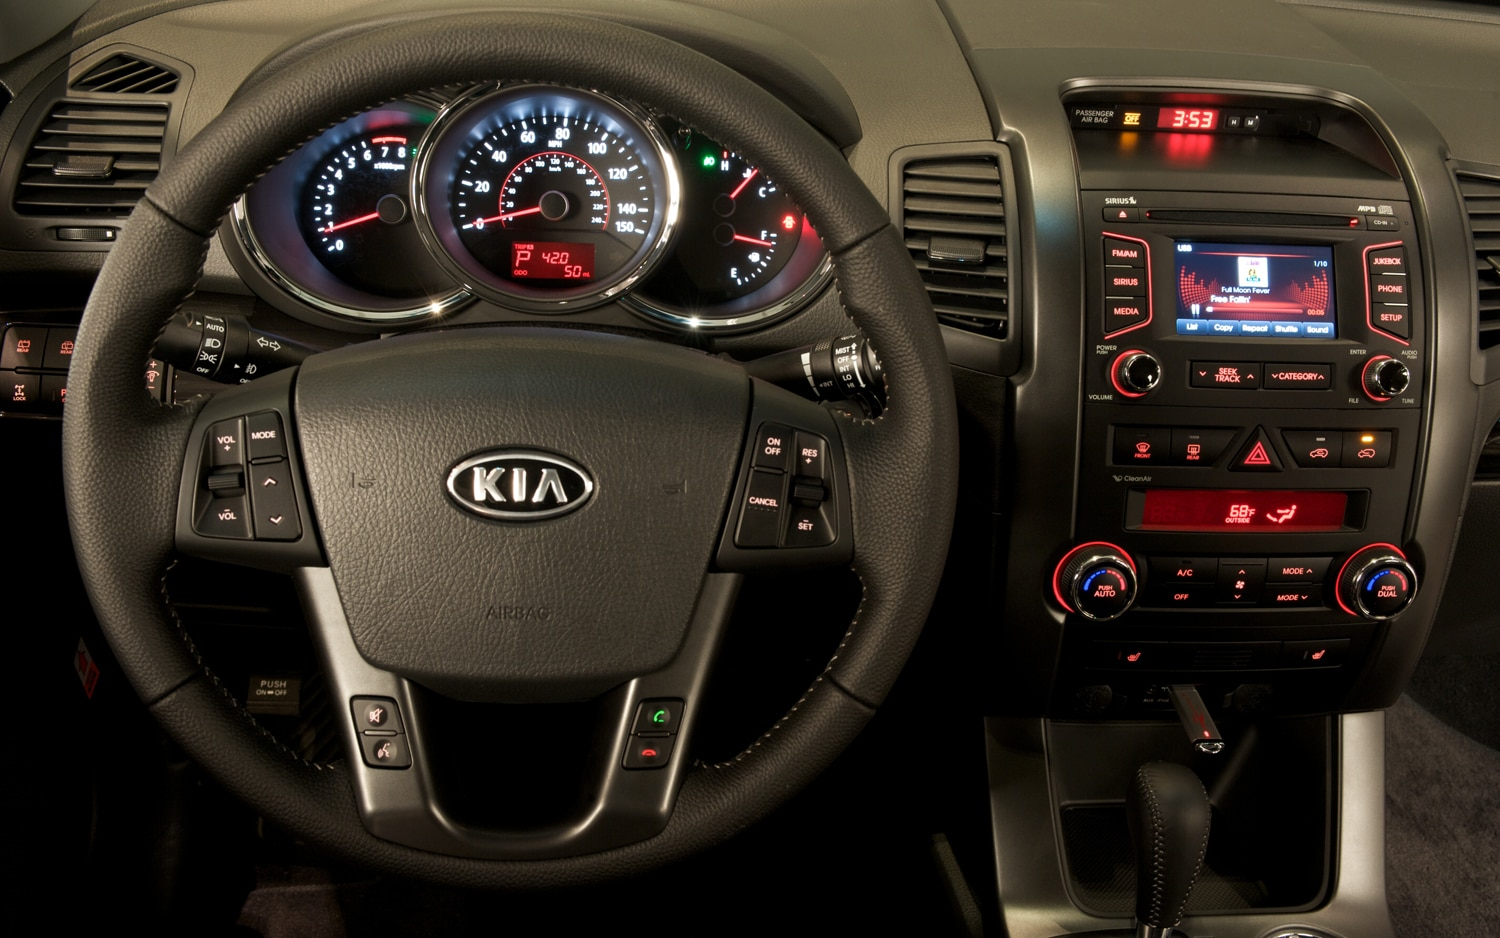 2012 Kia Sorento Steering Wheel 2